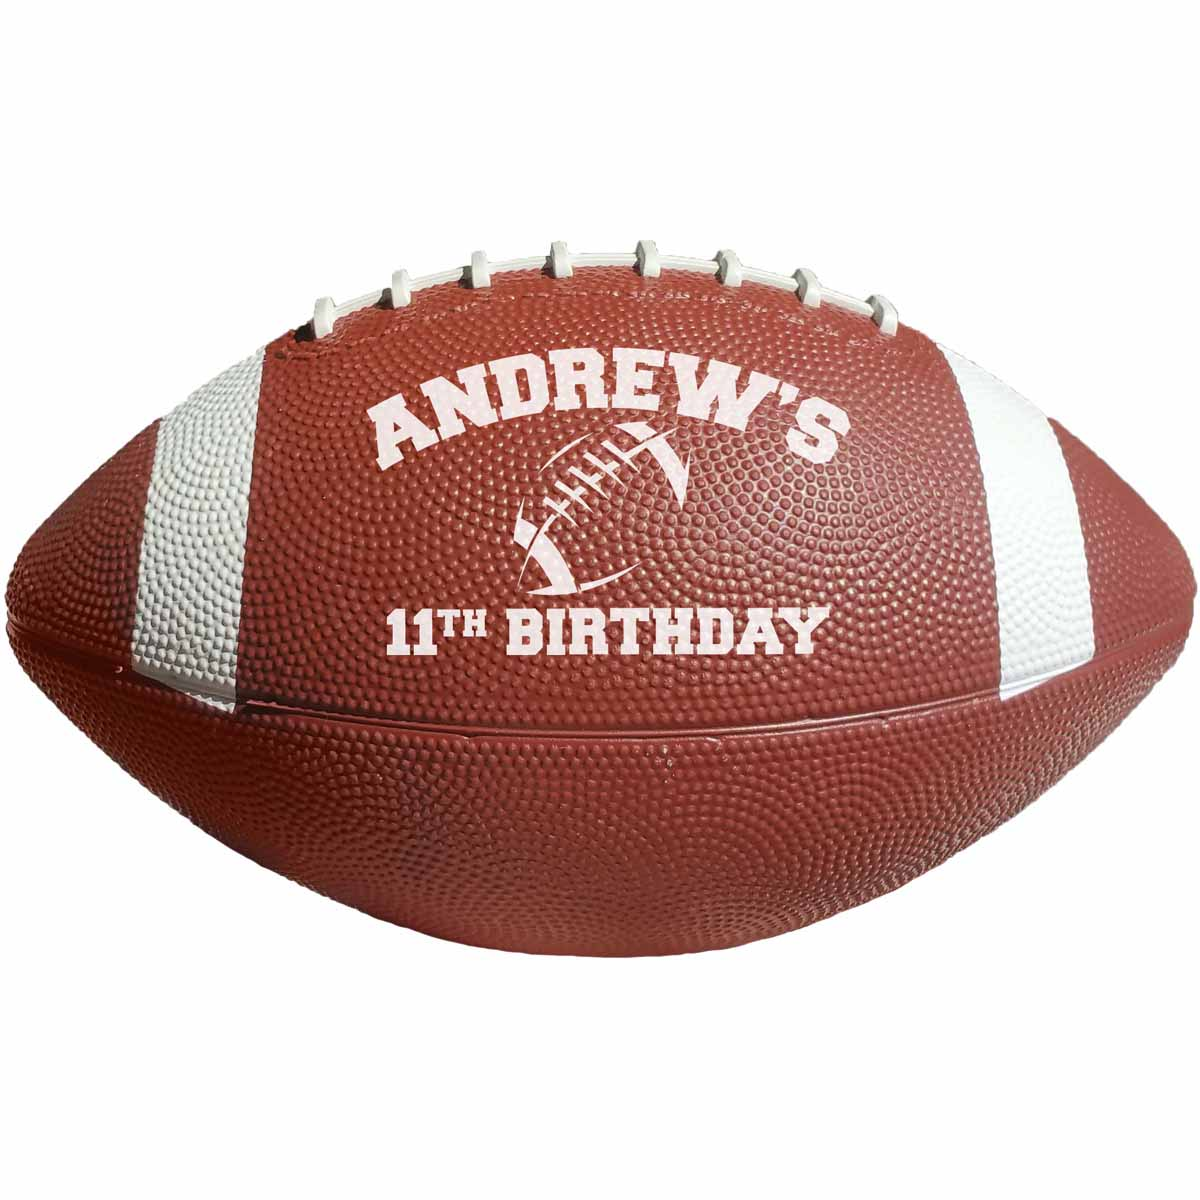 "10 1/2"" Rubber Footballs with White Stripes (Brown)"